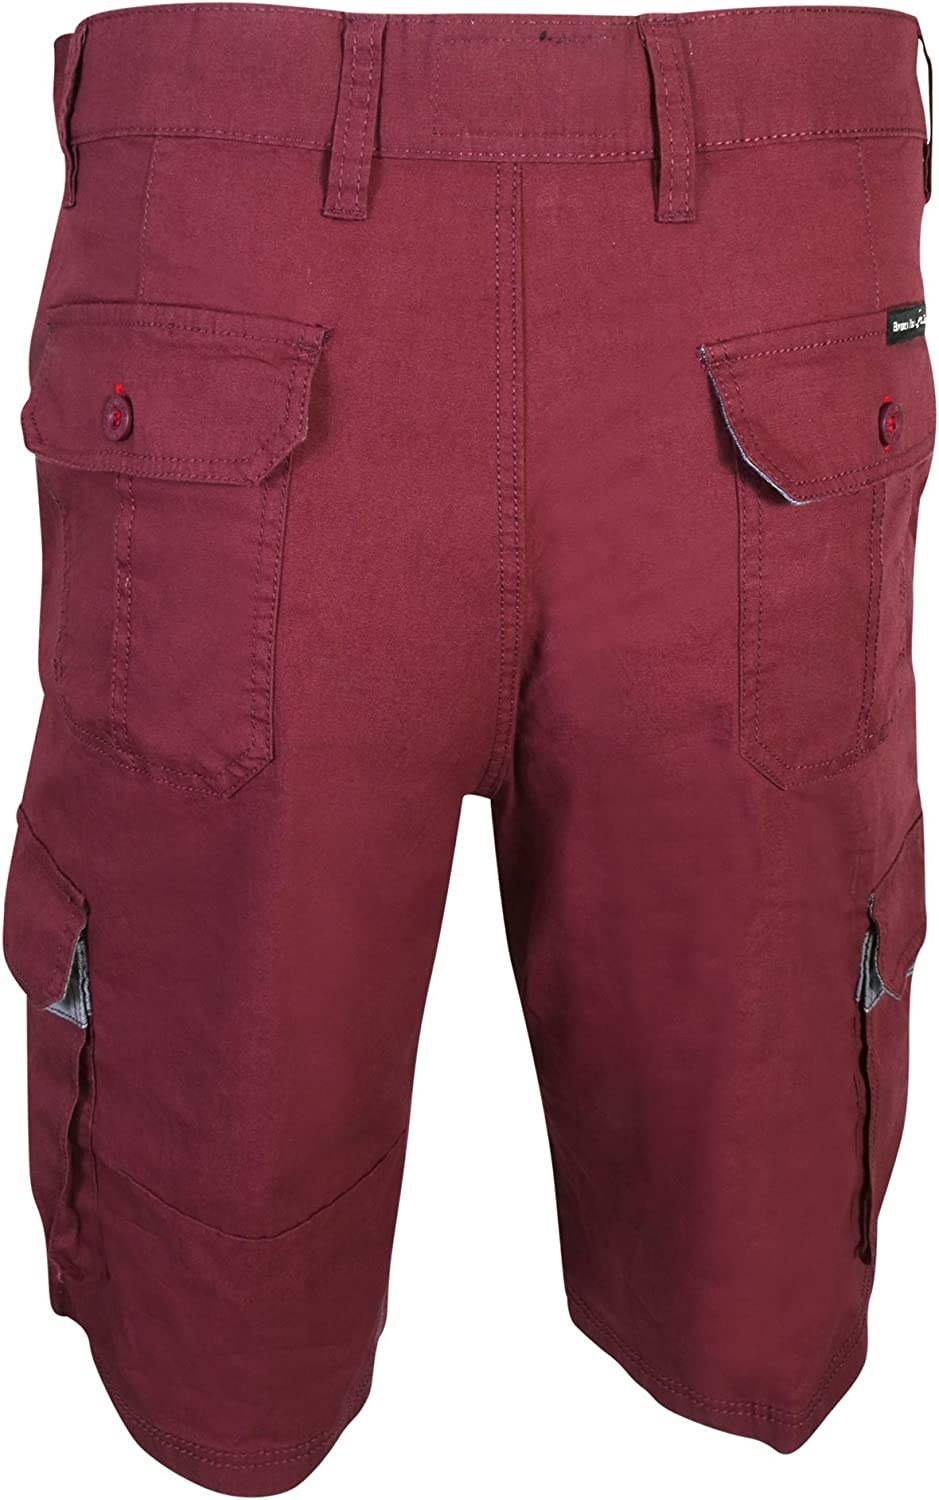 Beverly Hills Polo Club Mens Twill Cargo Short 2 Pack